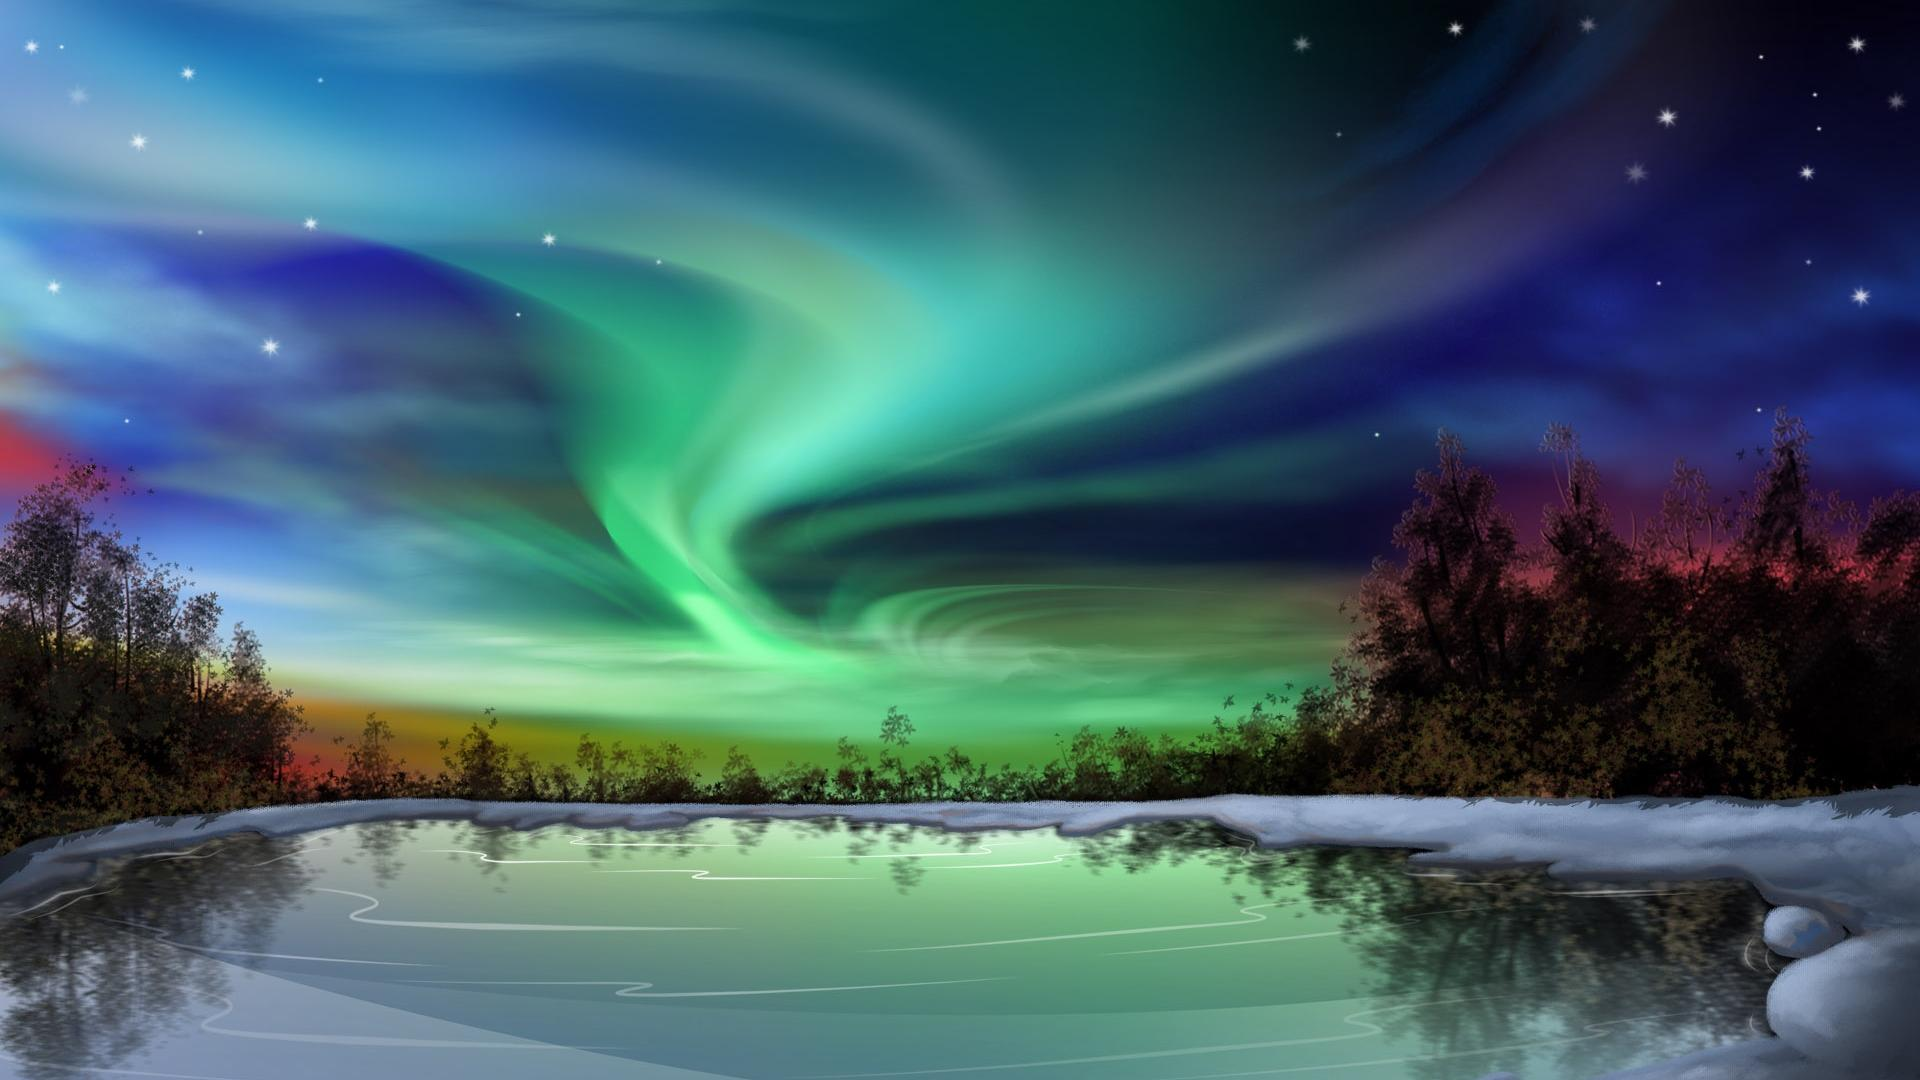 Colorful Northern Lights Available in 19201080 1920x1080